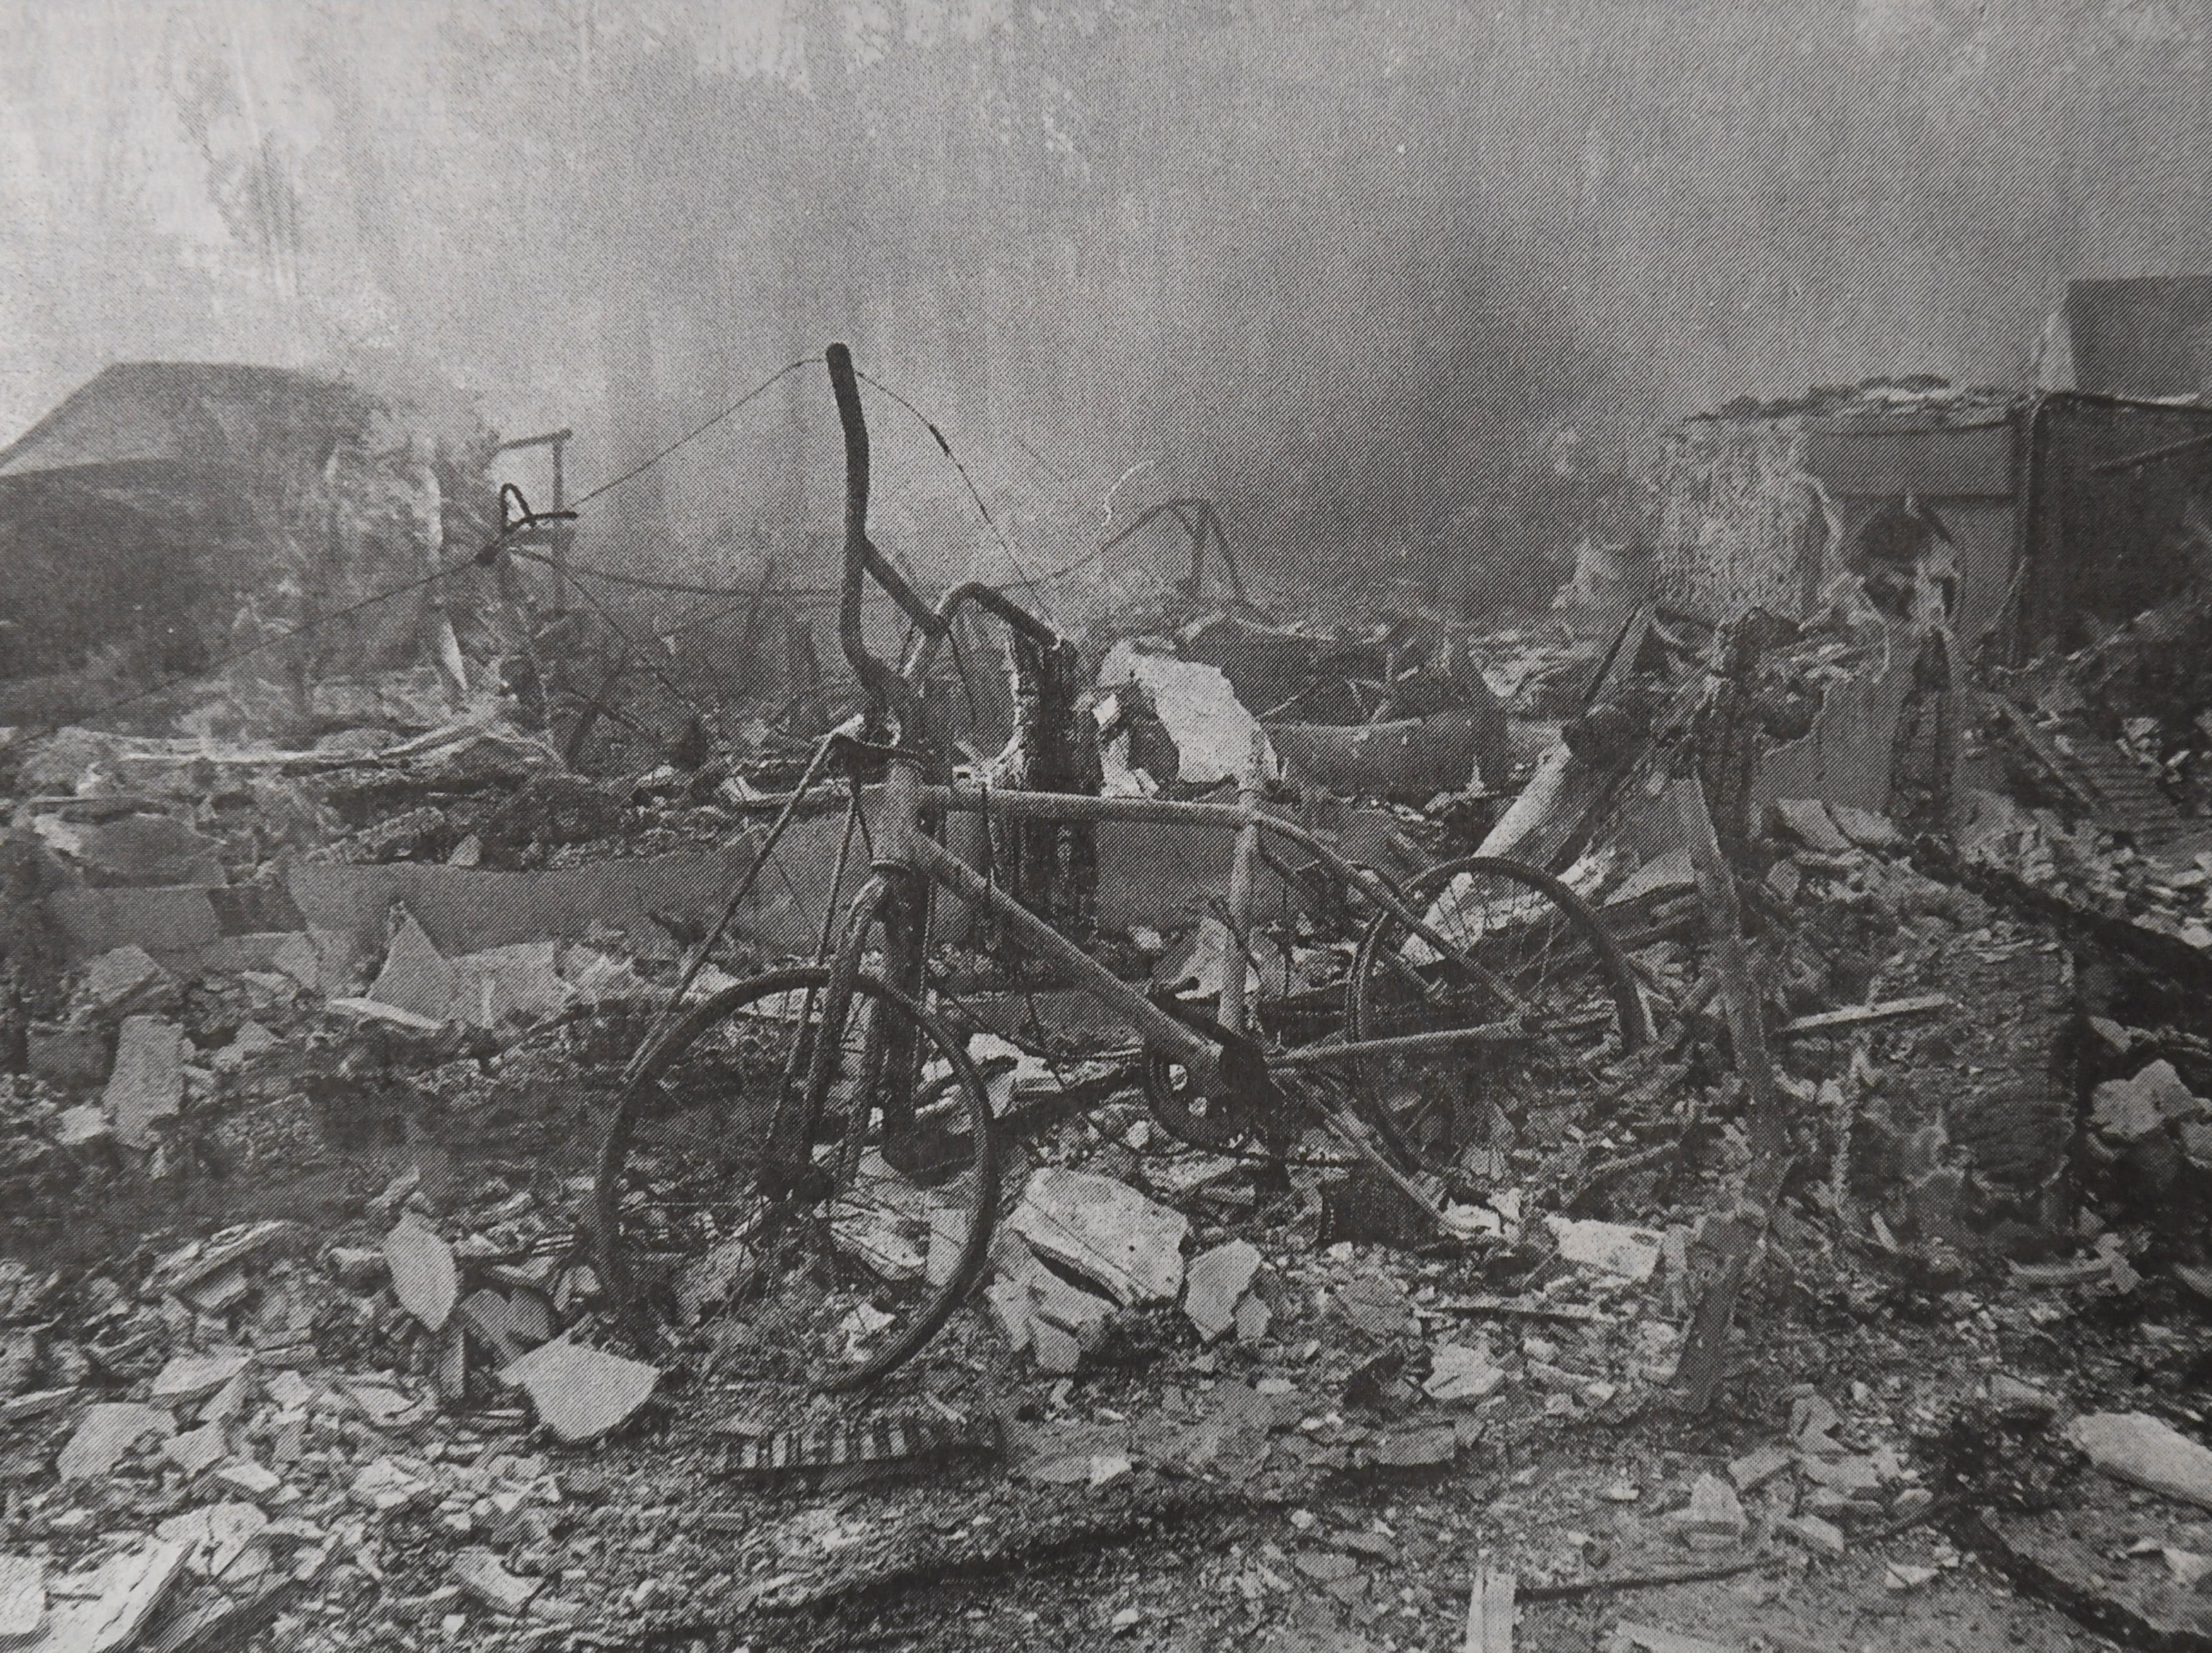 A charred bicycle was one of only a few recognizable remains of a residence that was destroyed by fire April 15, 1999, on Urbino Avenue in Port St. Lucie.